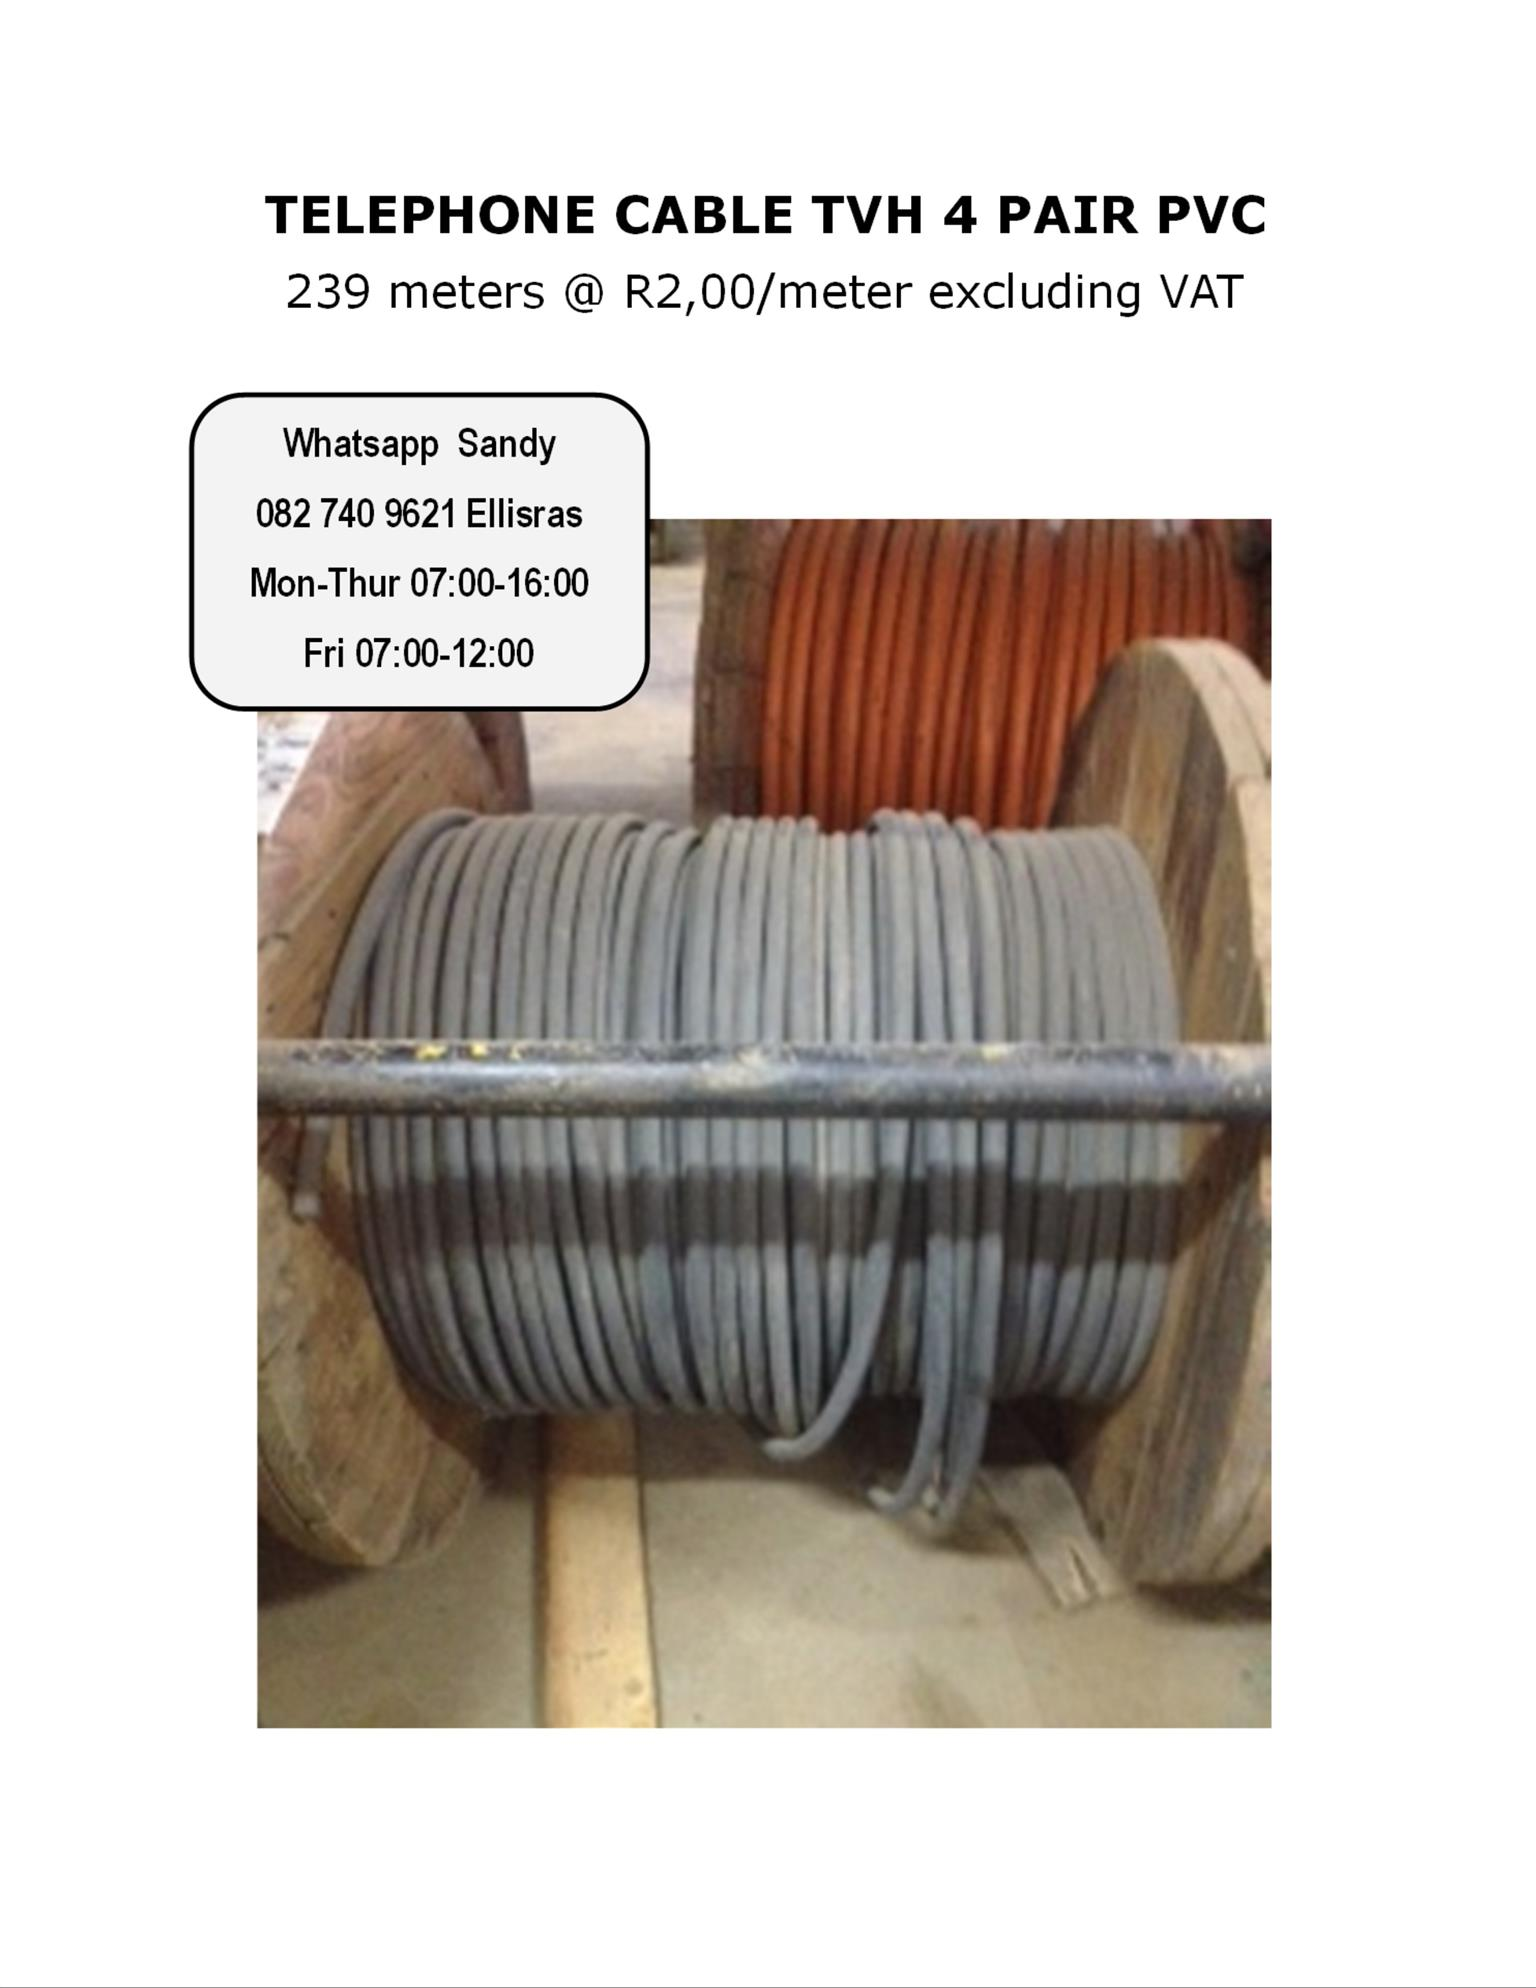 TELEPHONE CABLE TVH 4 PAIR PVC